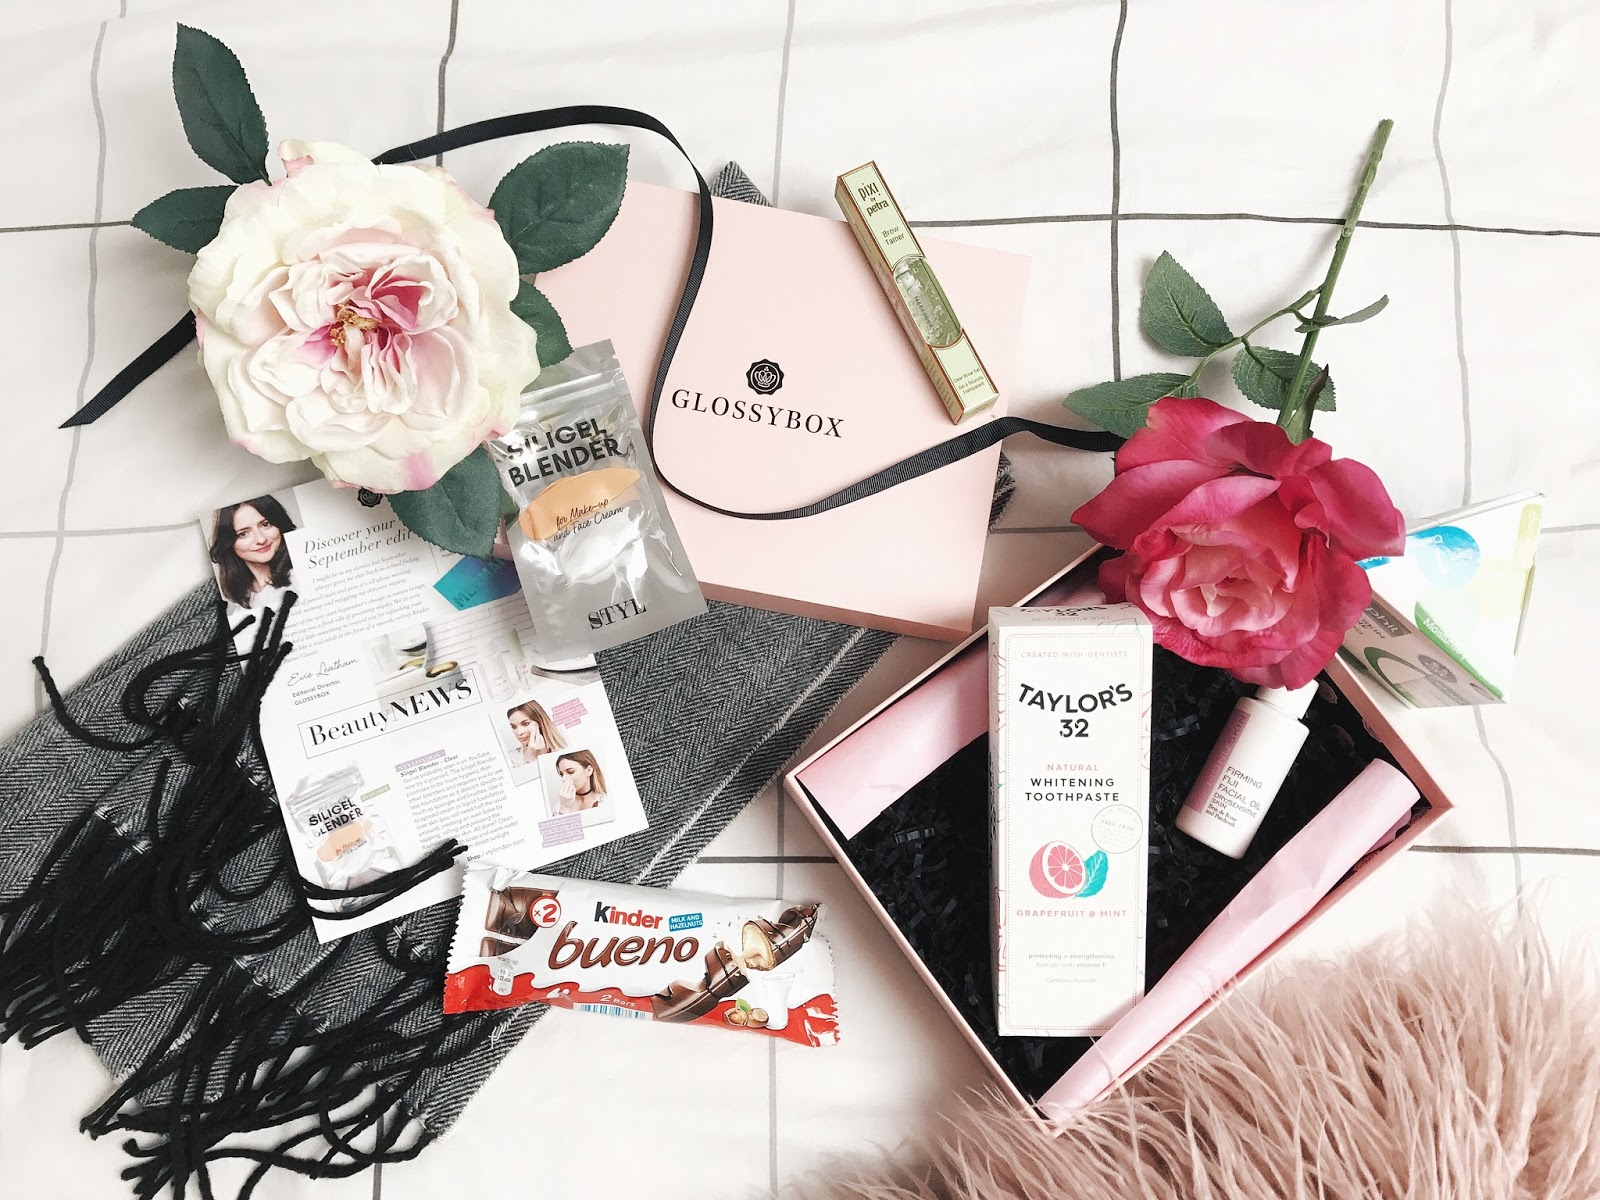 Glossybox September 2017 Unboxing Review The Kitty Luxe